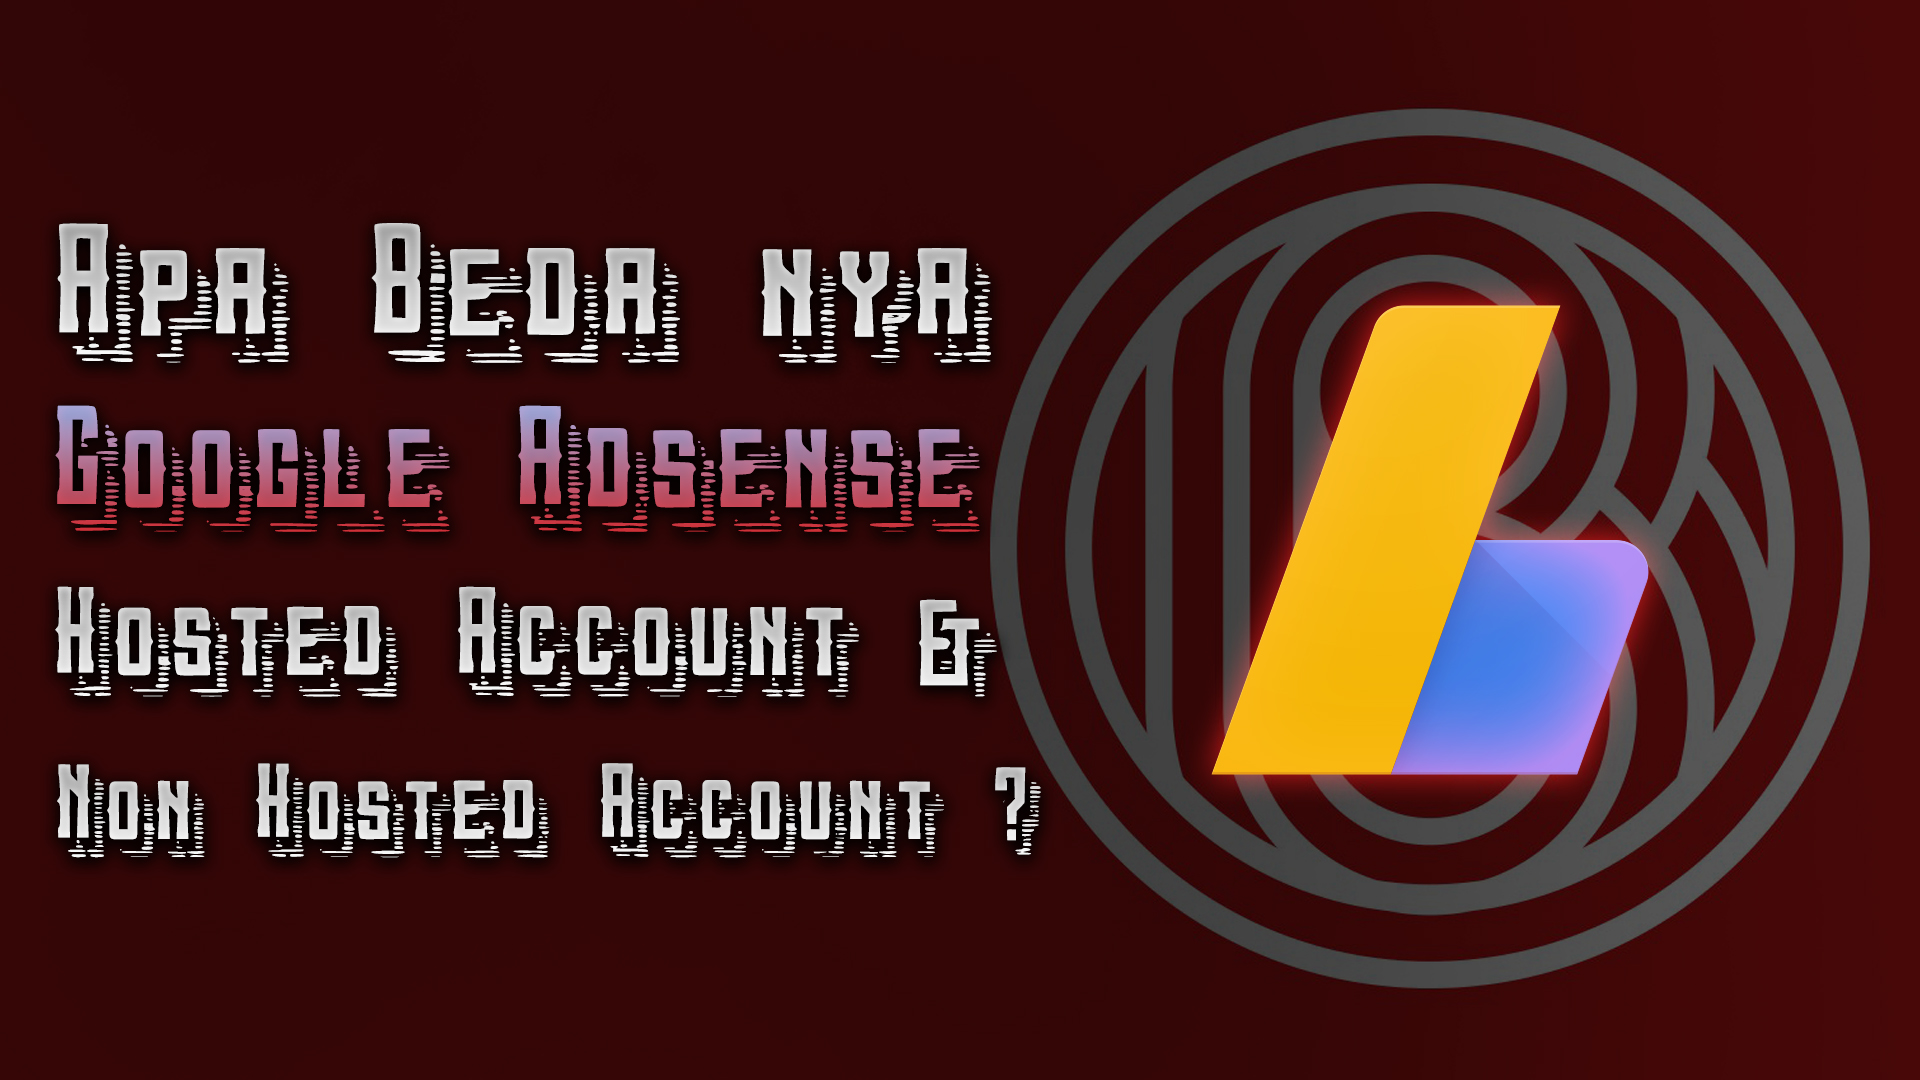 perbedaan hosted account non hosted akun adsense - rio bermano